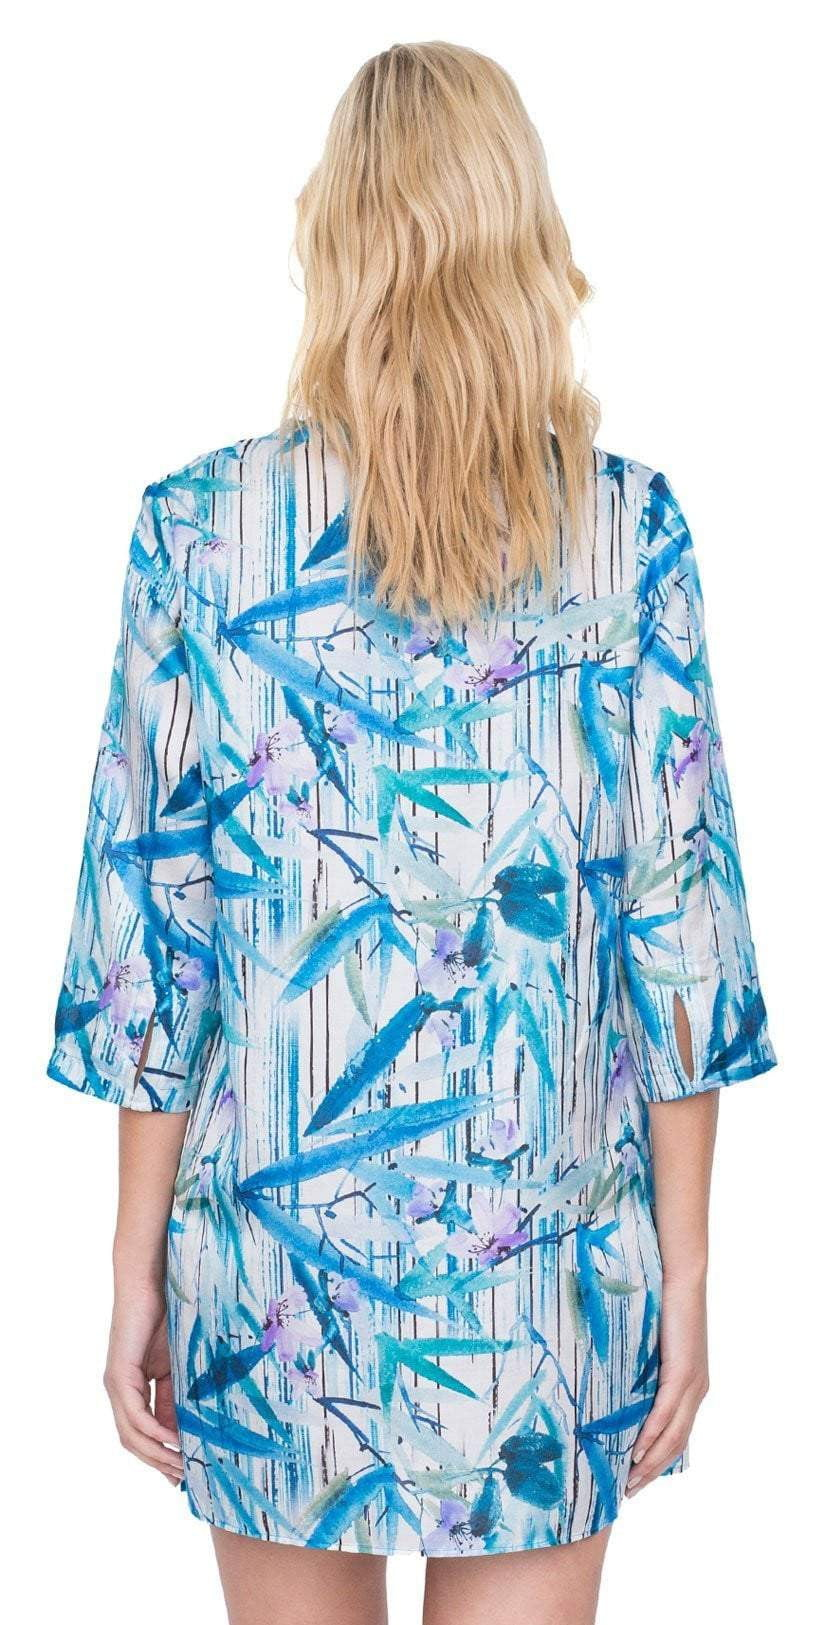 Gottex Exotic Paradise Tunic Cover Up 19EP622 086: